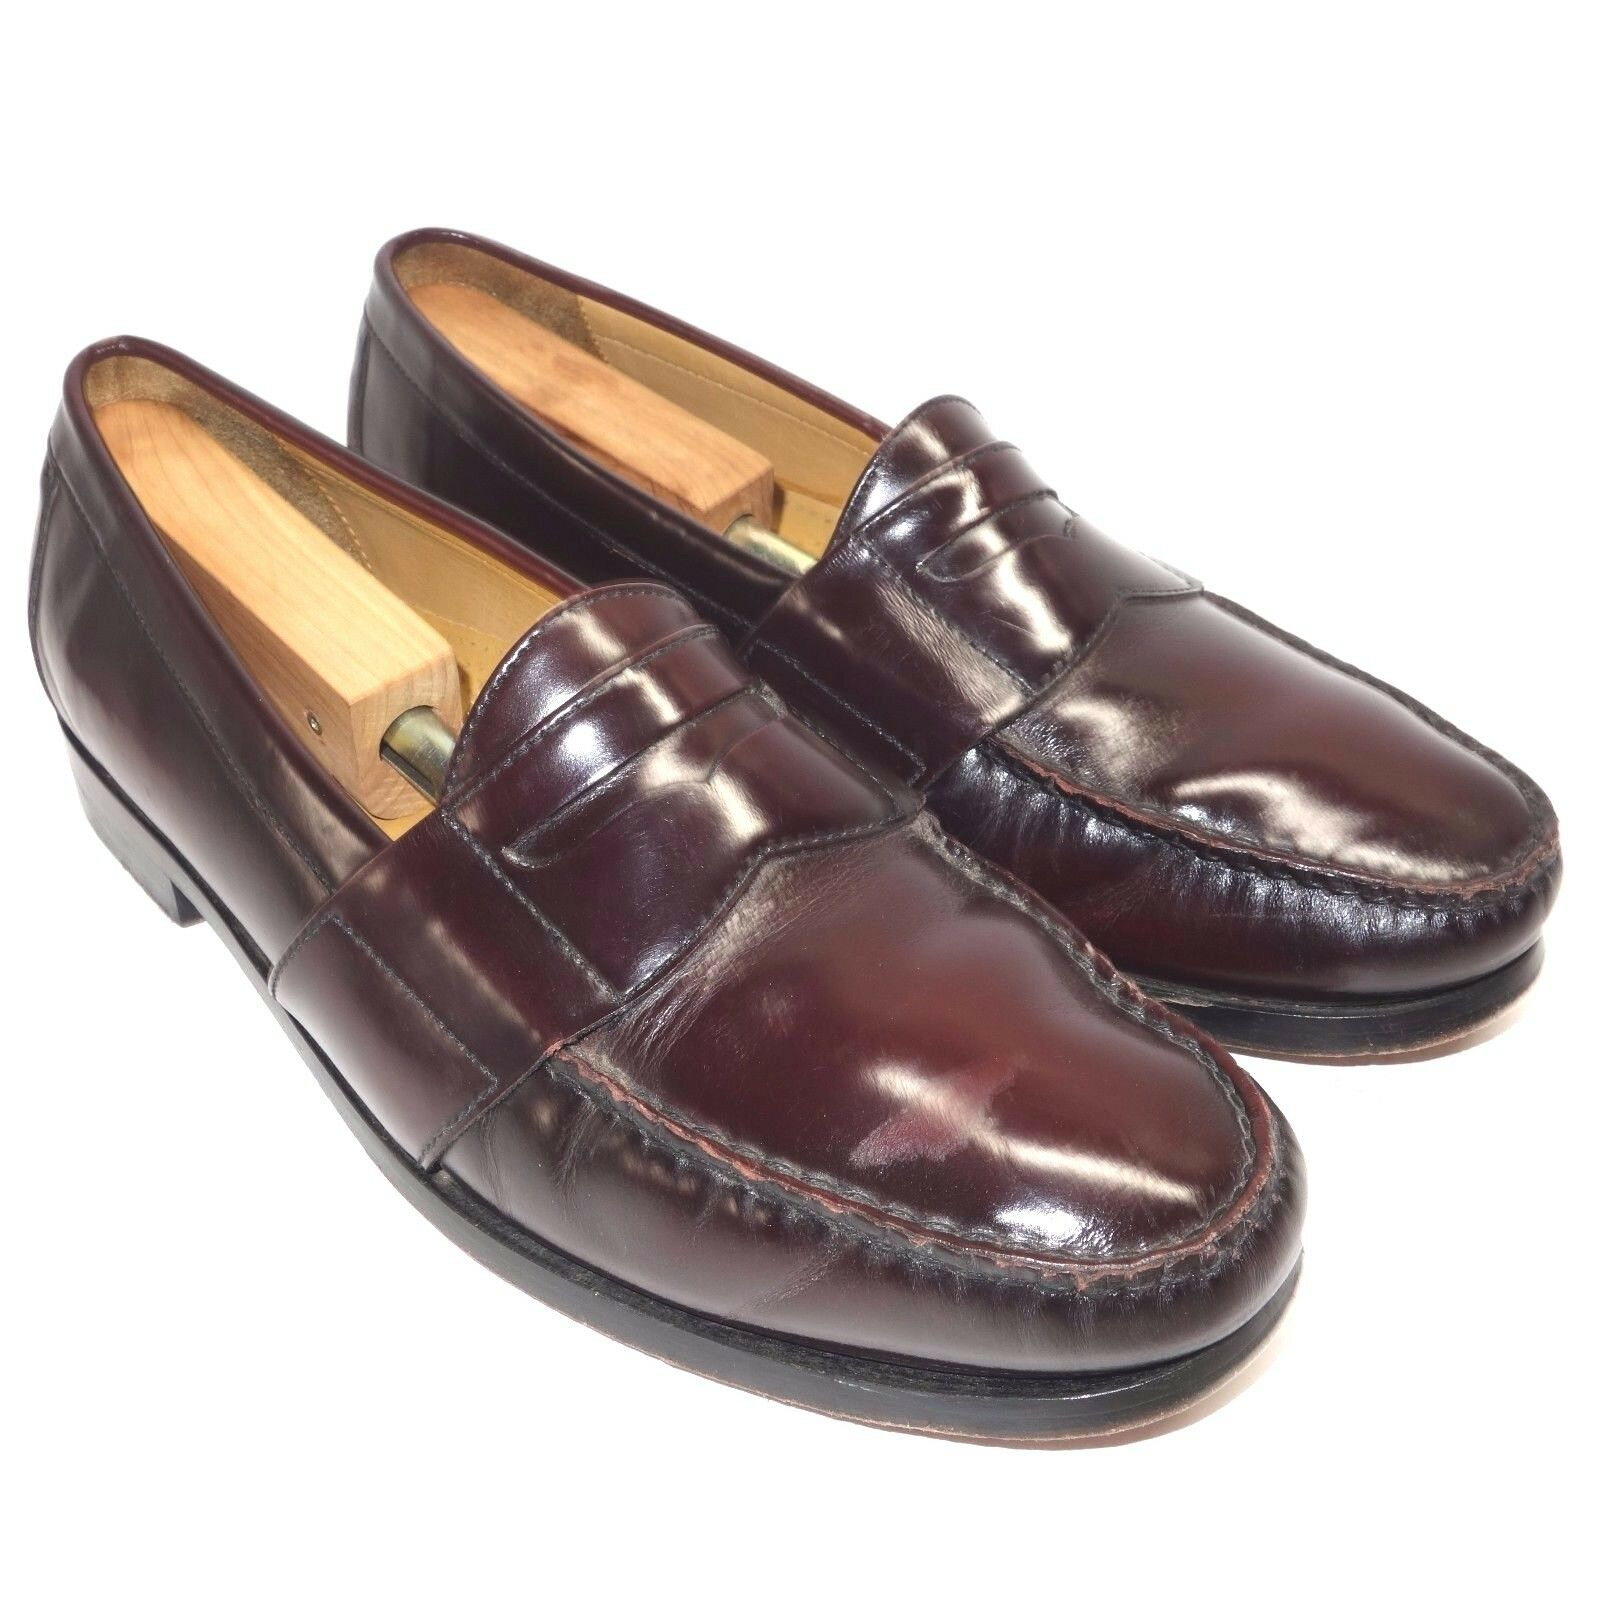 Cole Haan Burgundy Leather Pinch Penny Loafer Dress shoes Men's 10.5 M C08350